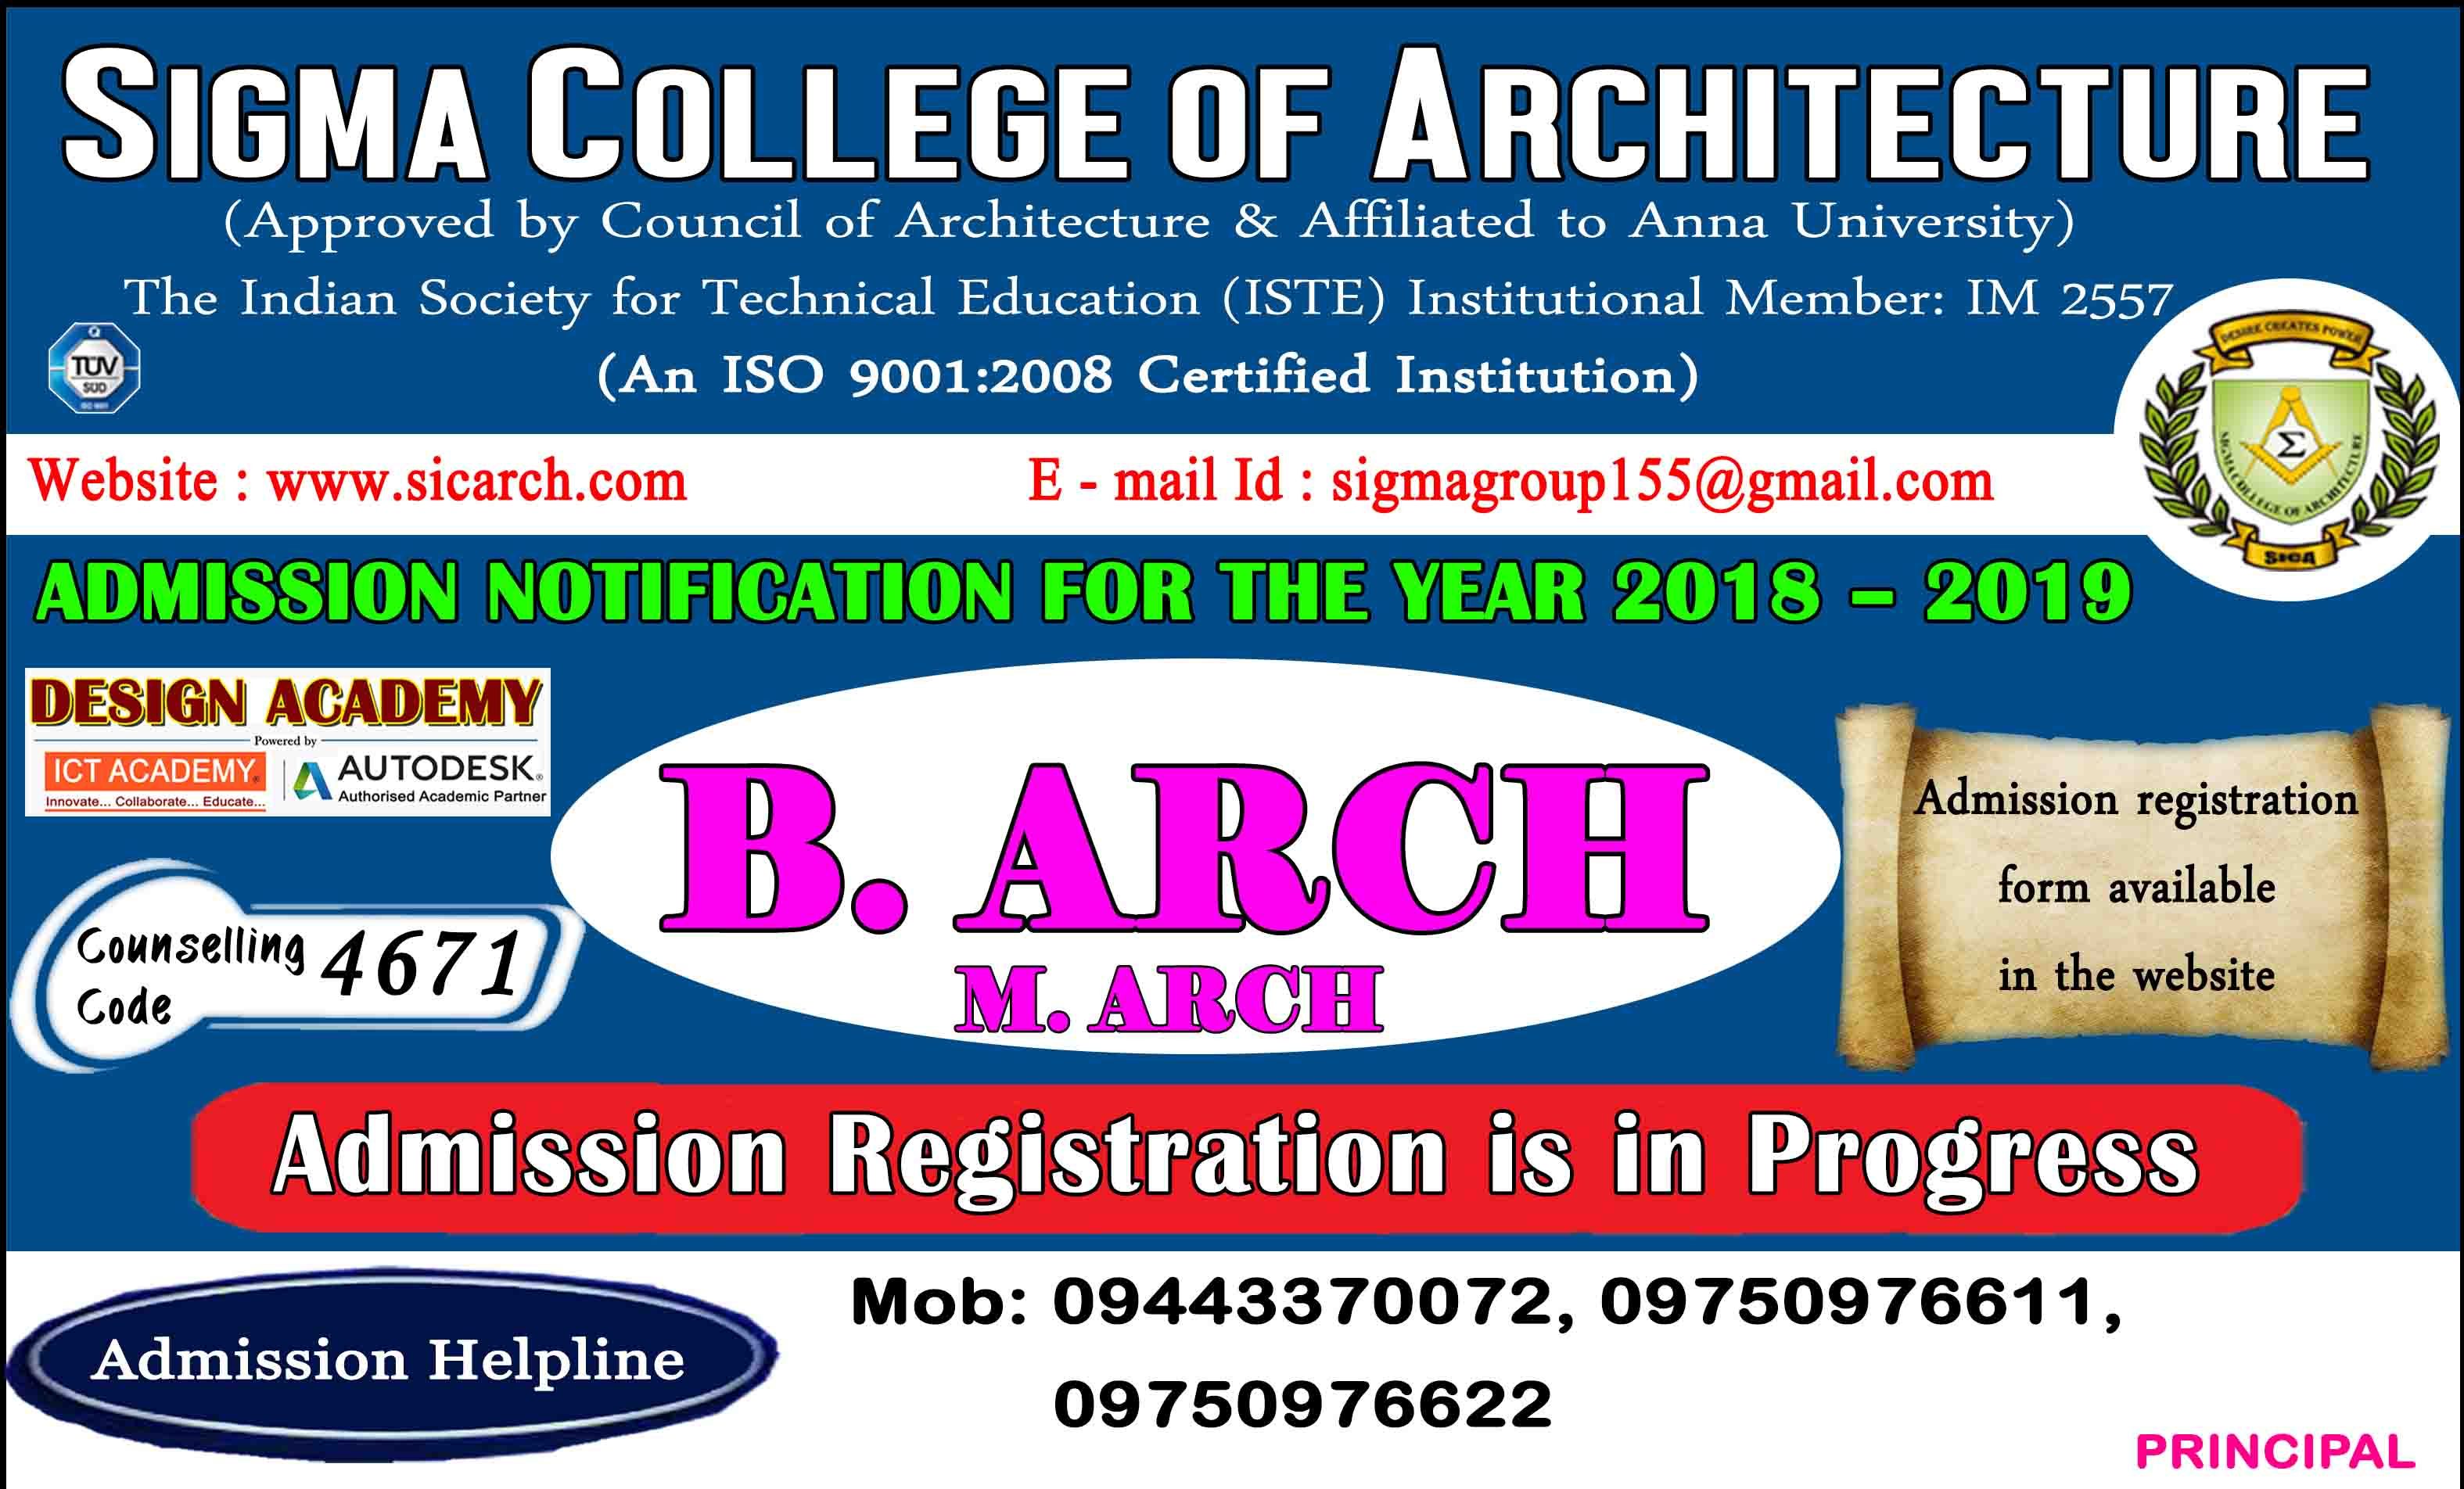 B.Arch & M.Arch Admission 2018 - 19, Counselling Code - 4671